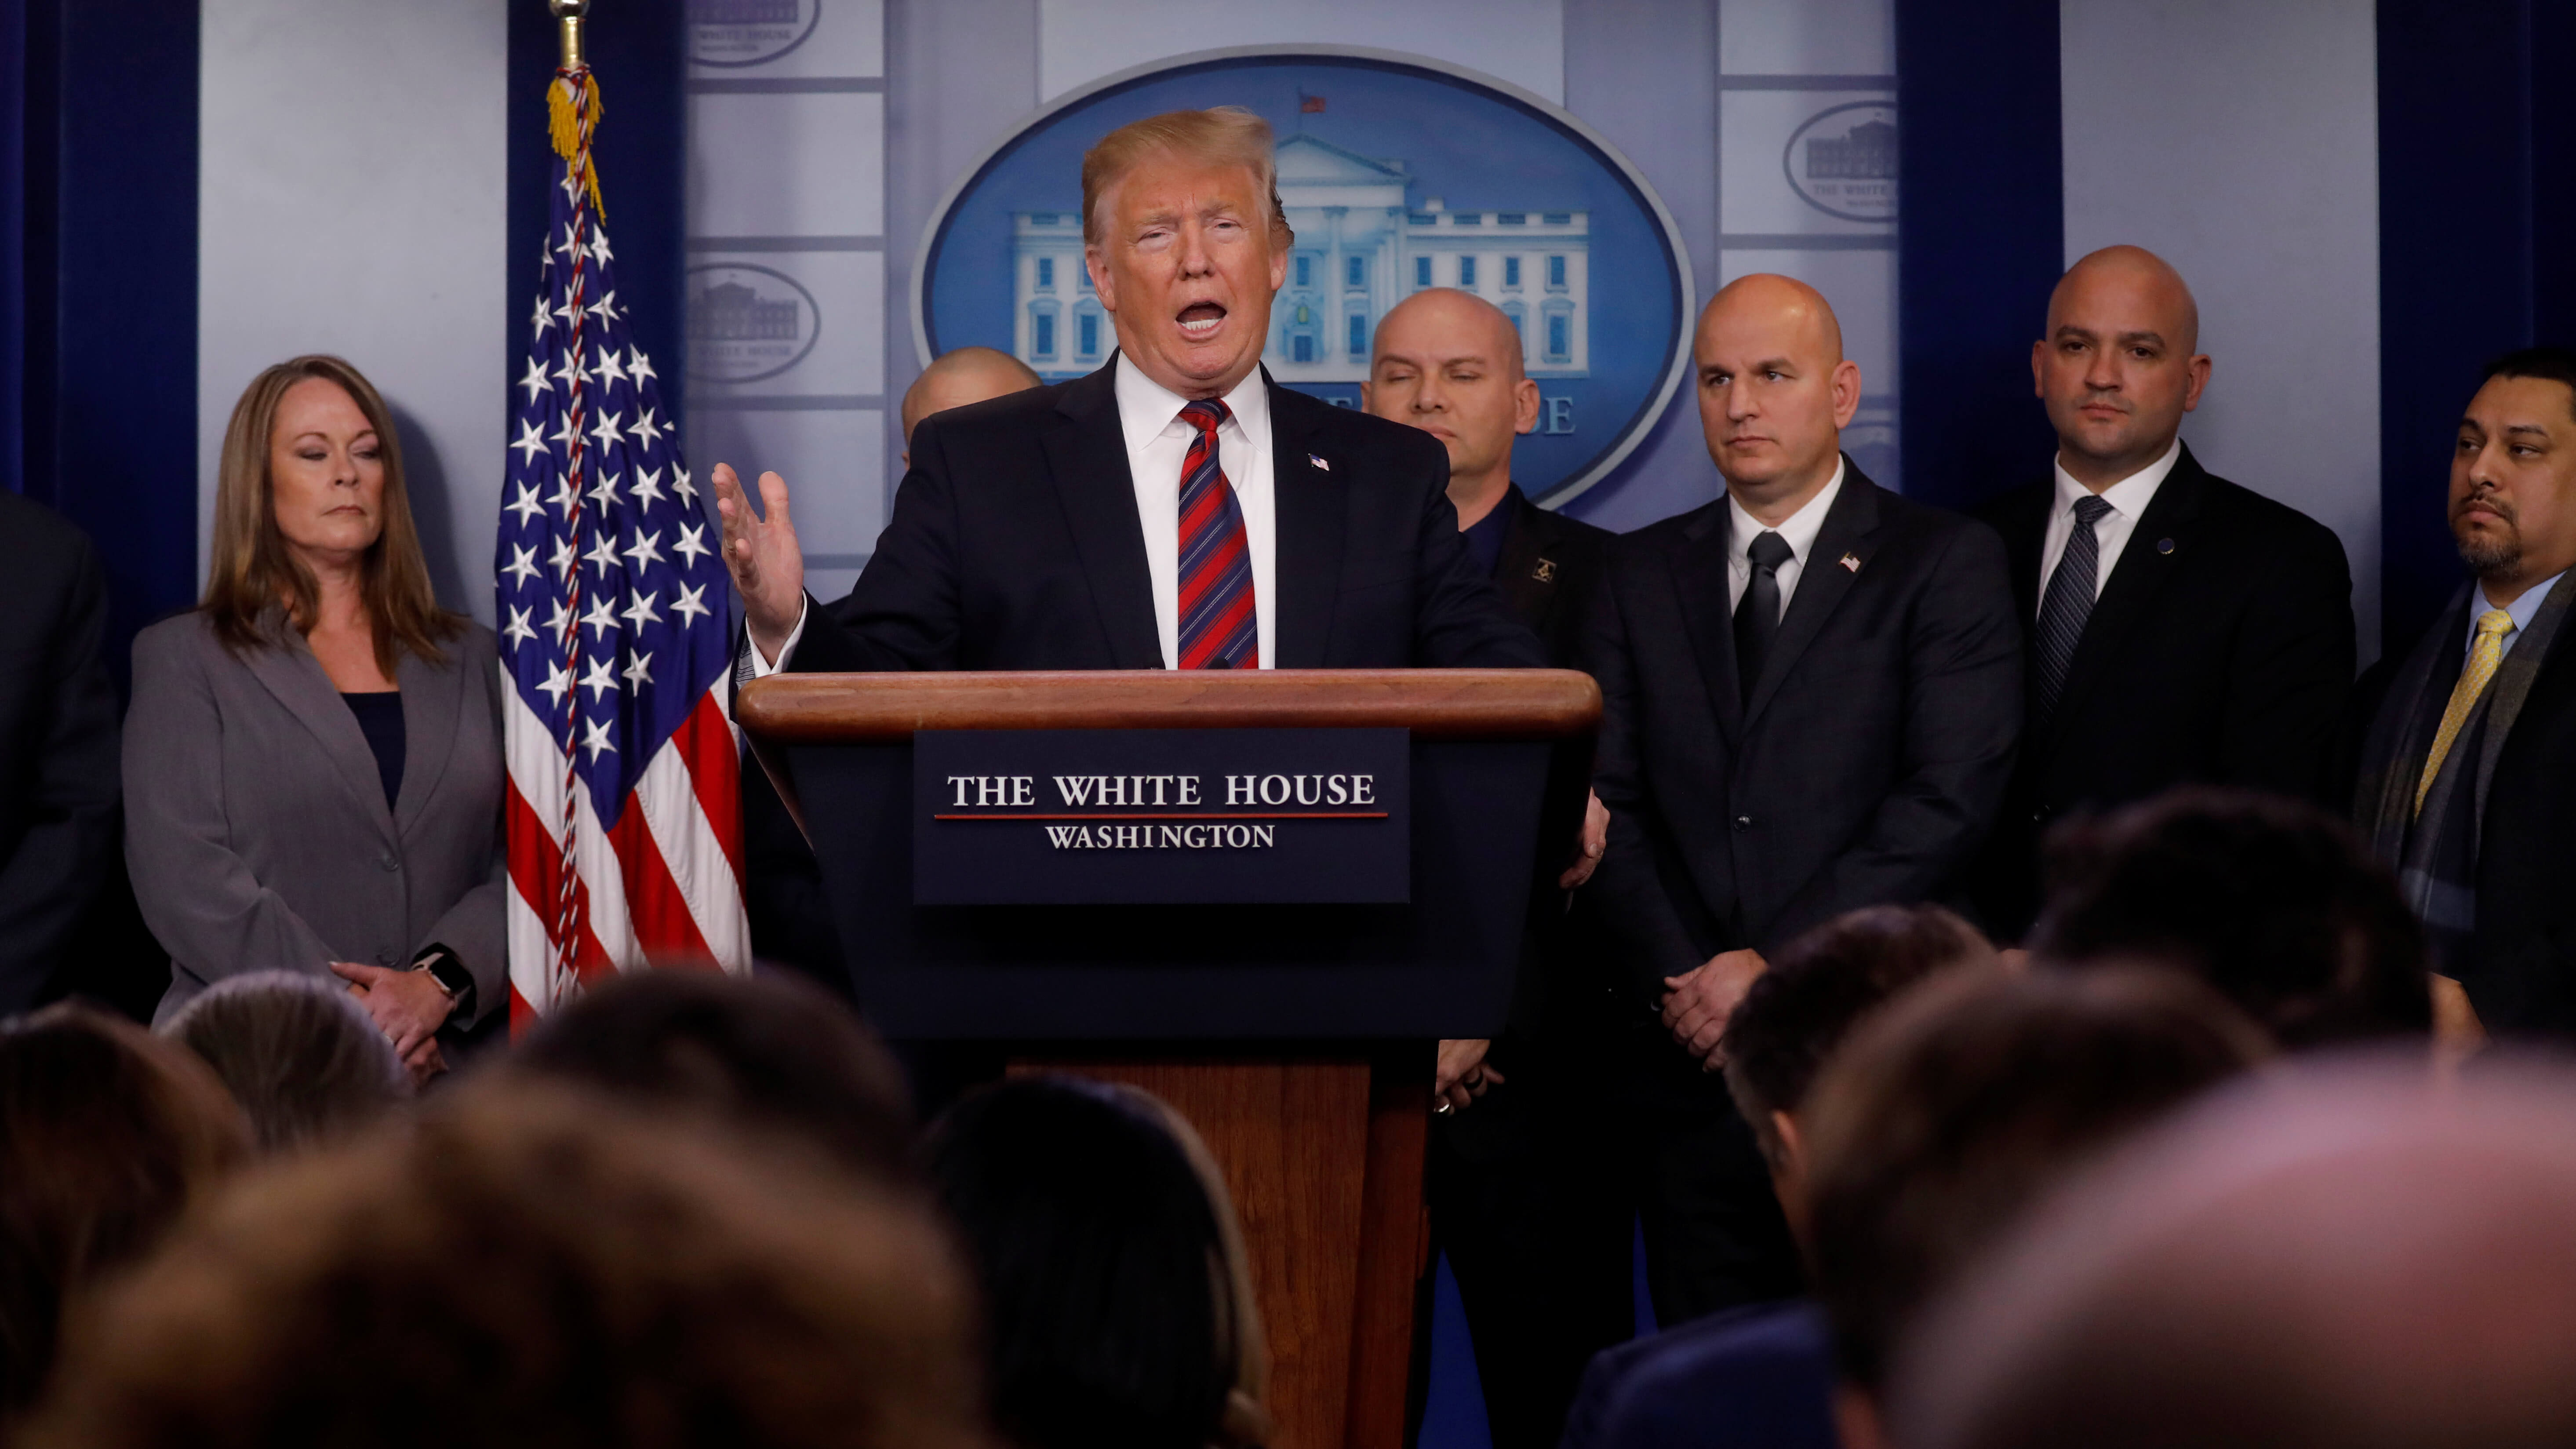 President Trump speaks at a podium while 3 bald men stand behind him.